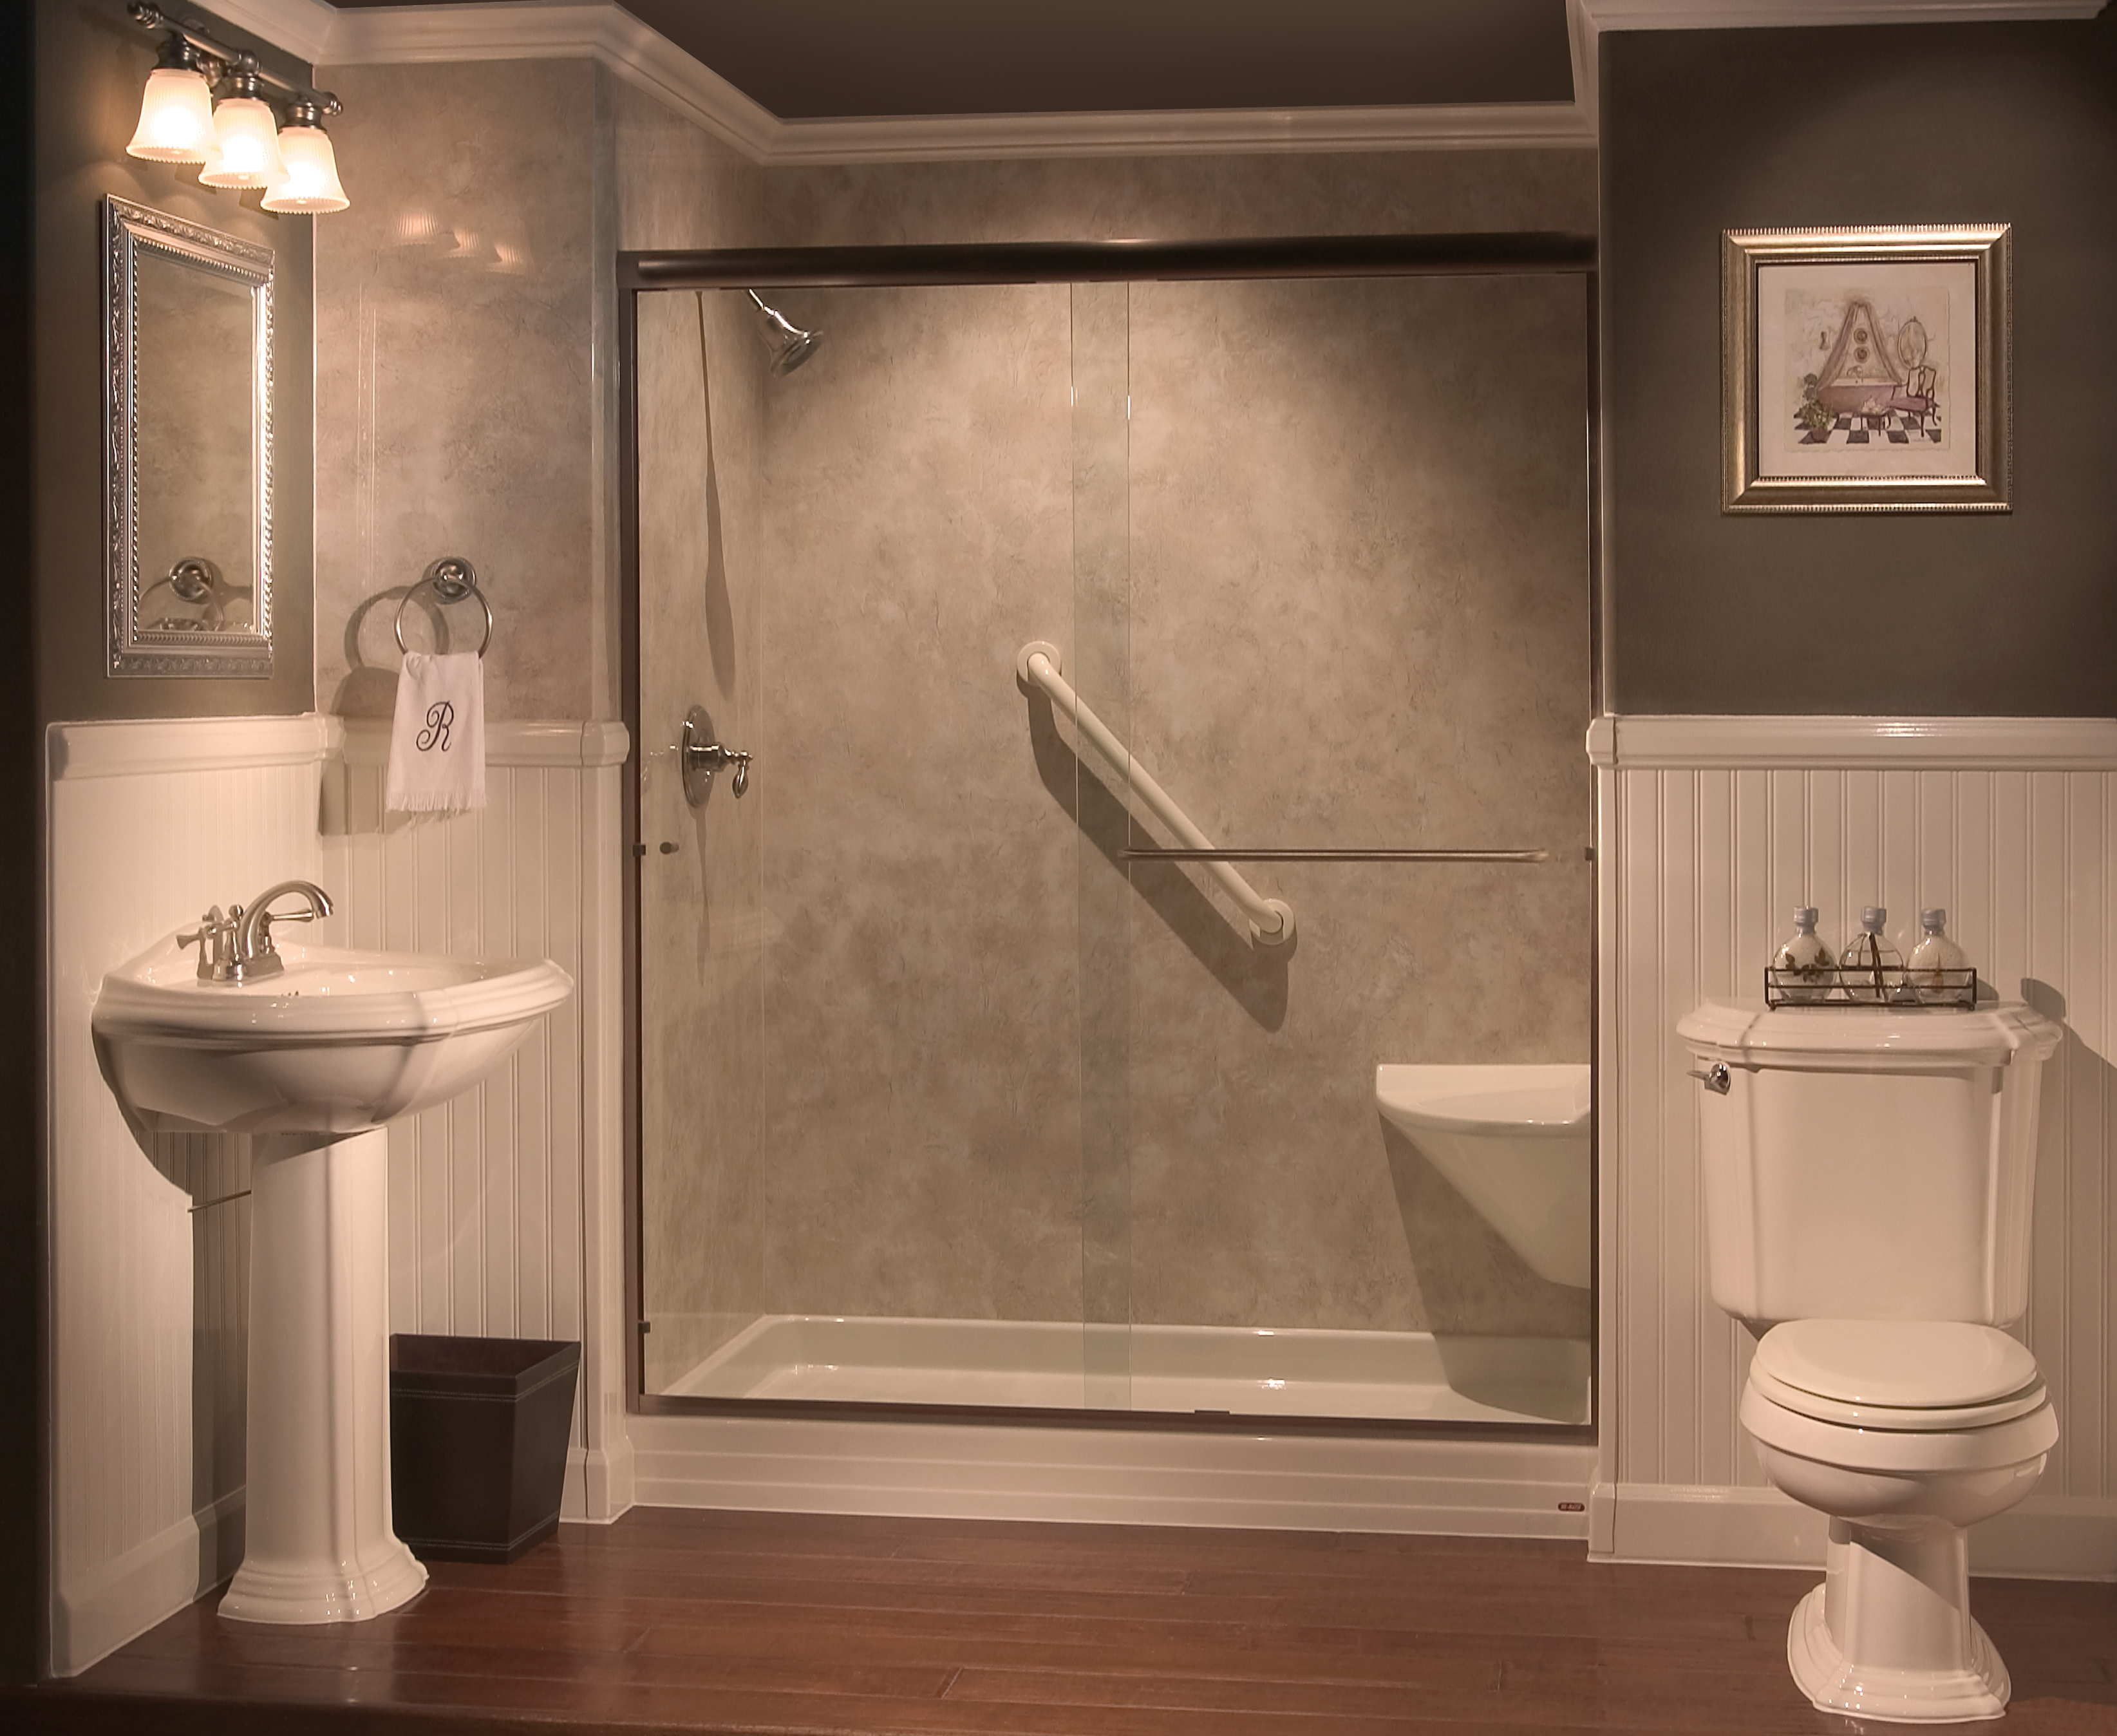 showers with seats built in | Tub-to-Shower Conversions ...